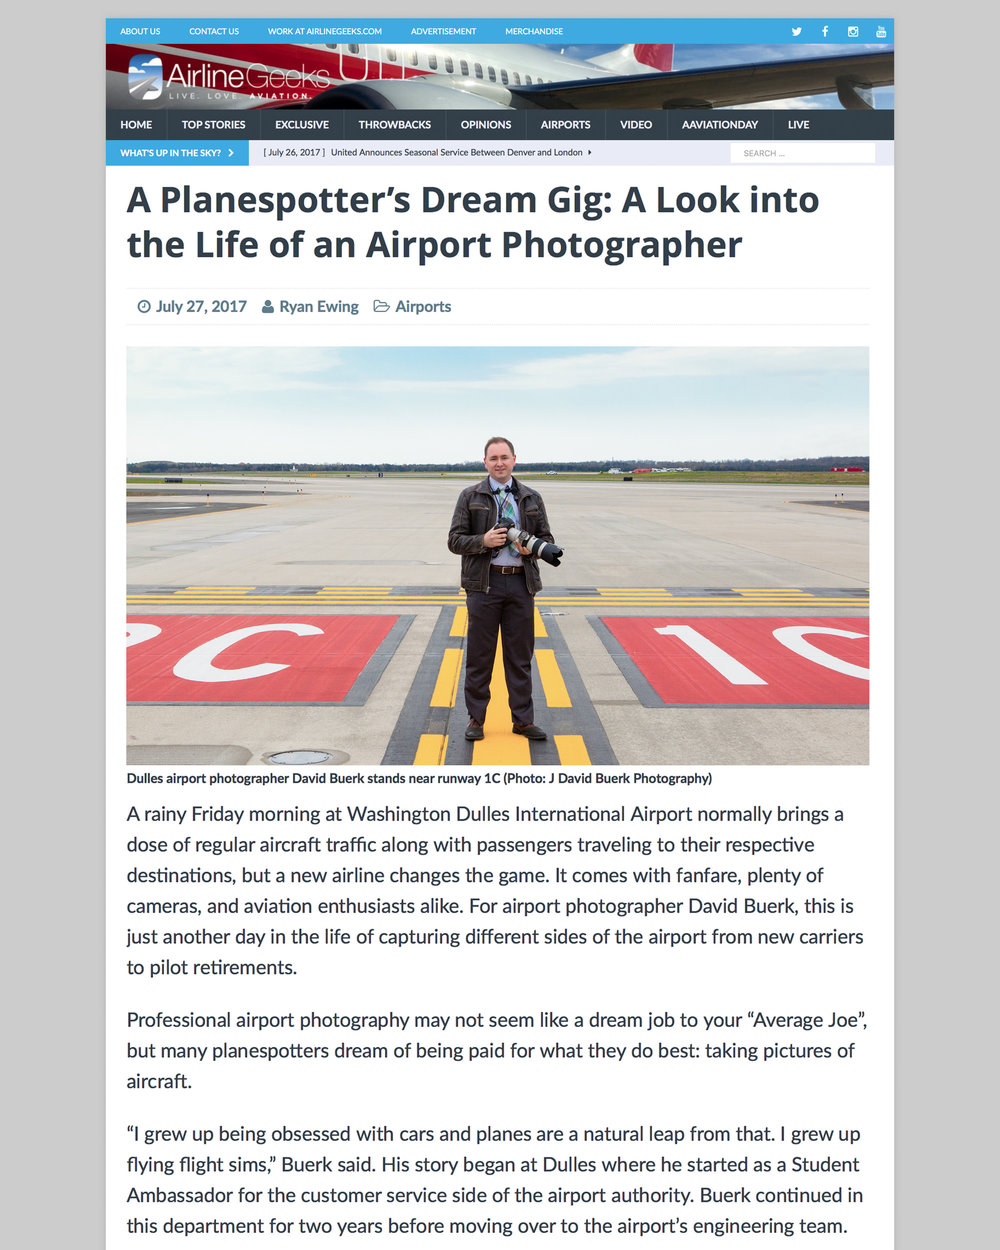 """A Planespotter's Dream Gig: A Look into the Life of an Airport Photographer;"" an article on AirlineGeeks.com profiling my work as an aviation marketing photographer.  Although my photography has been featured in many articles and publications, this marks the first time a publication has written an article specifically about me and my work."